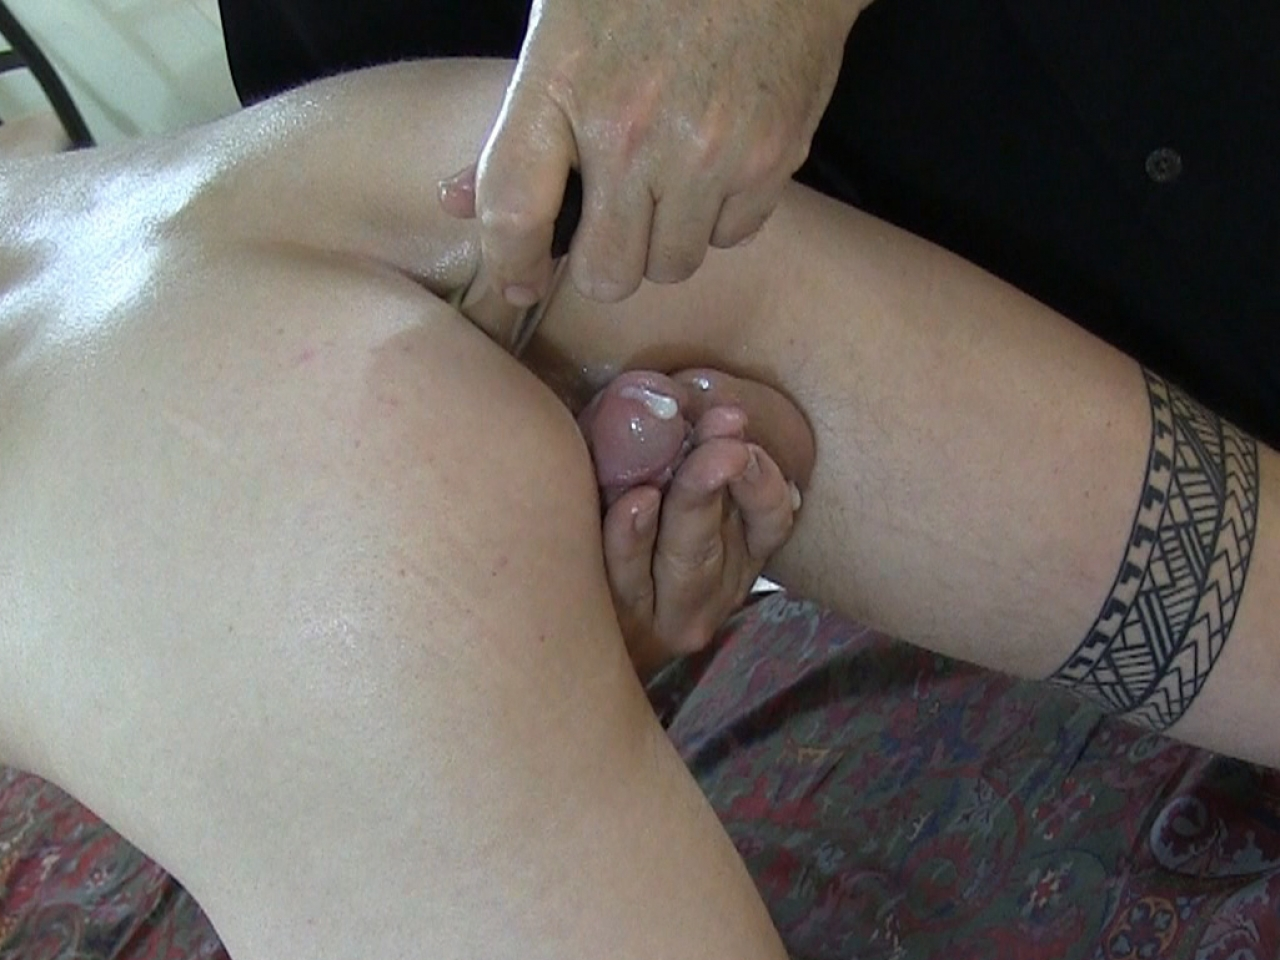 vibrator-in-his-ass-mom-fuck-son-daughter-free-video